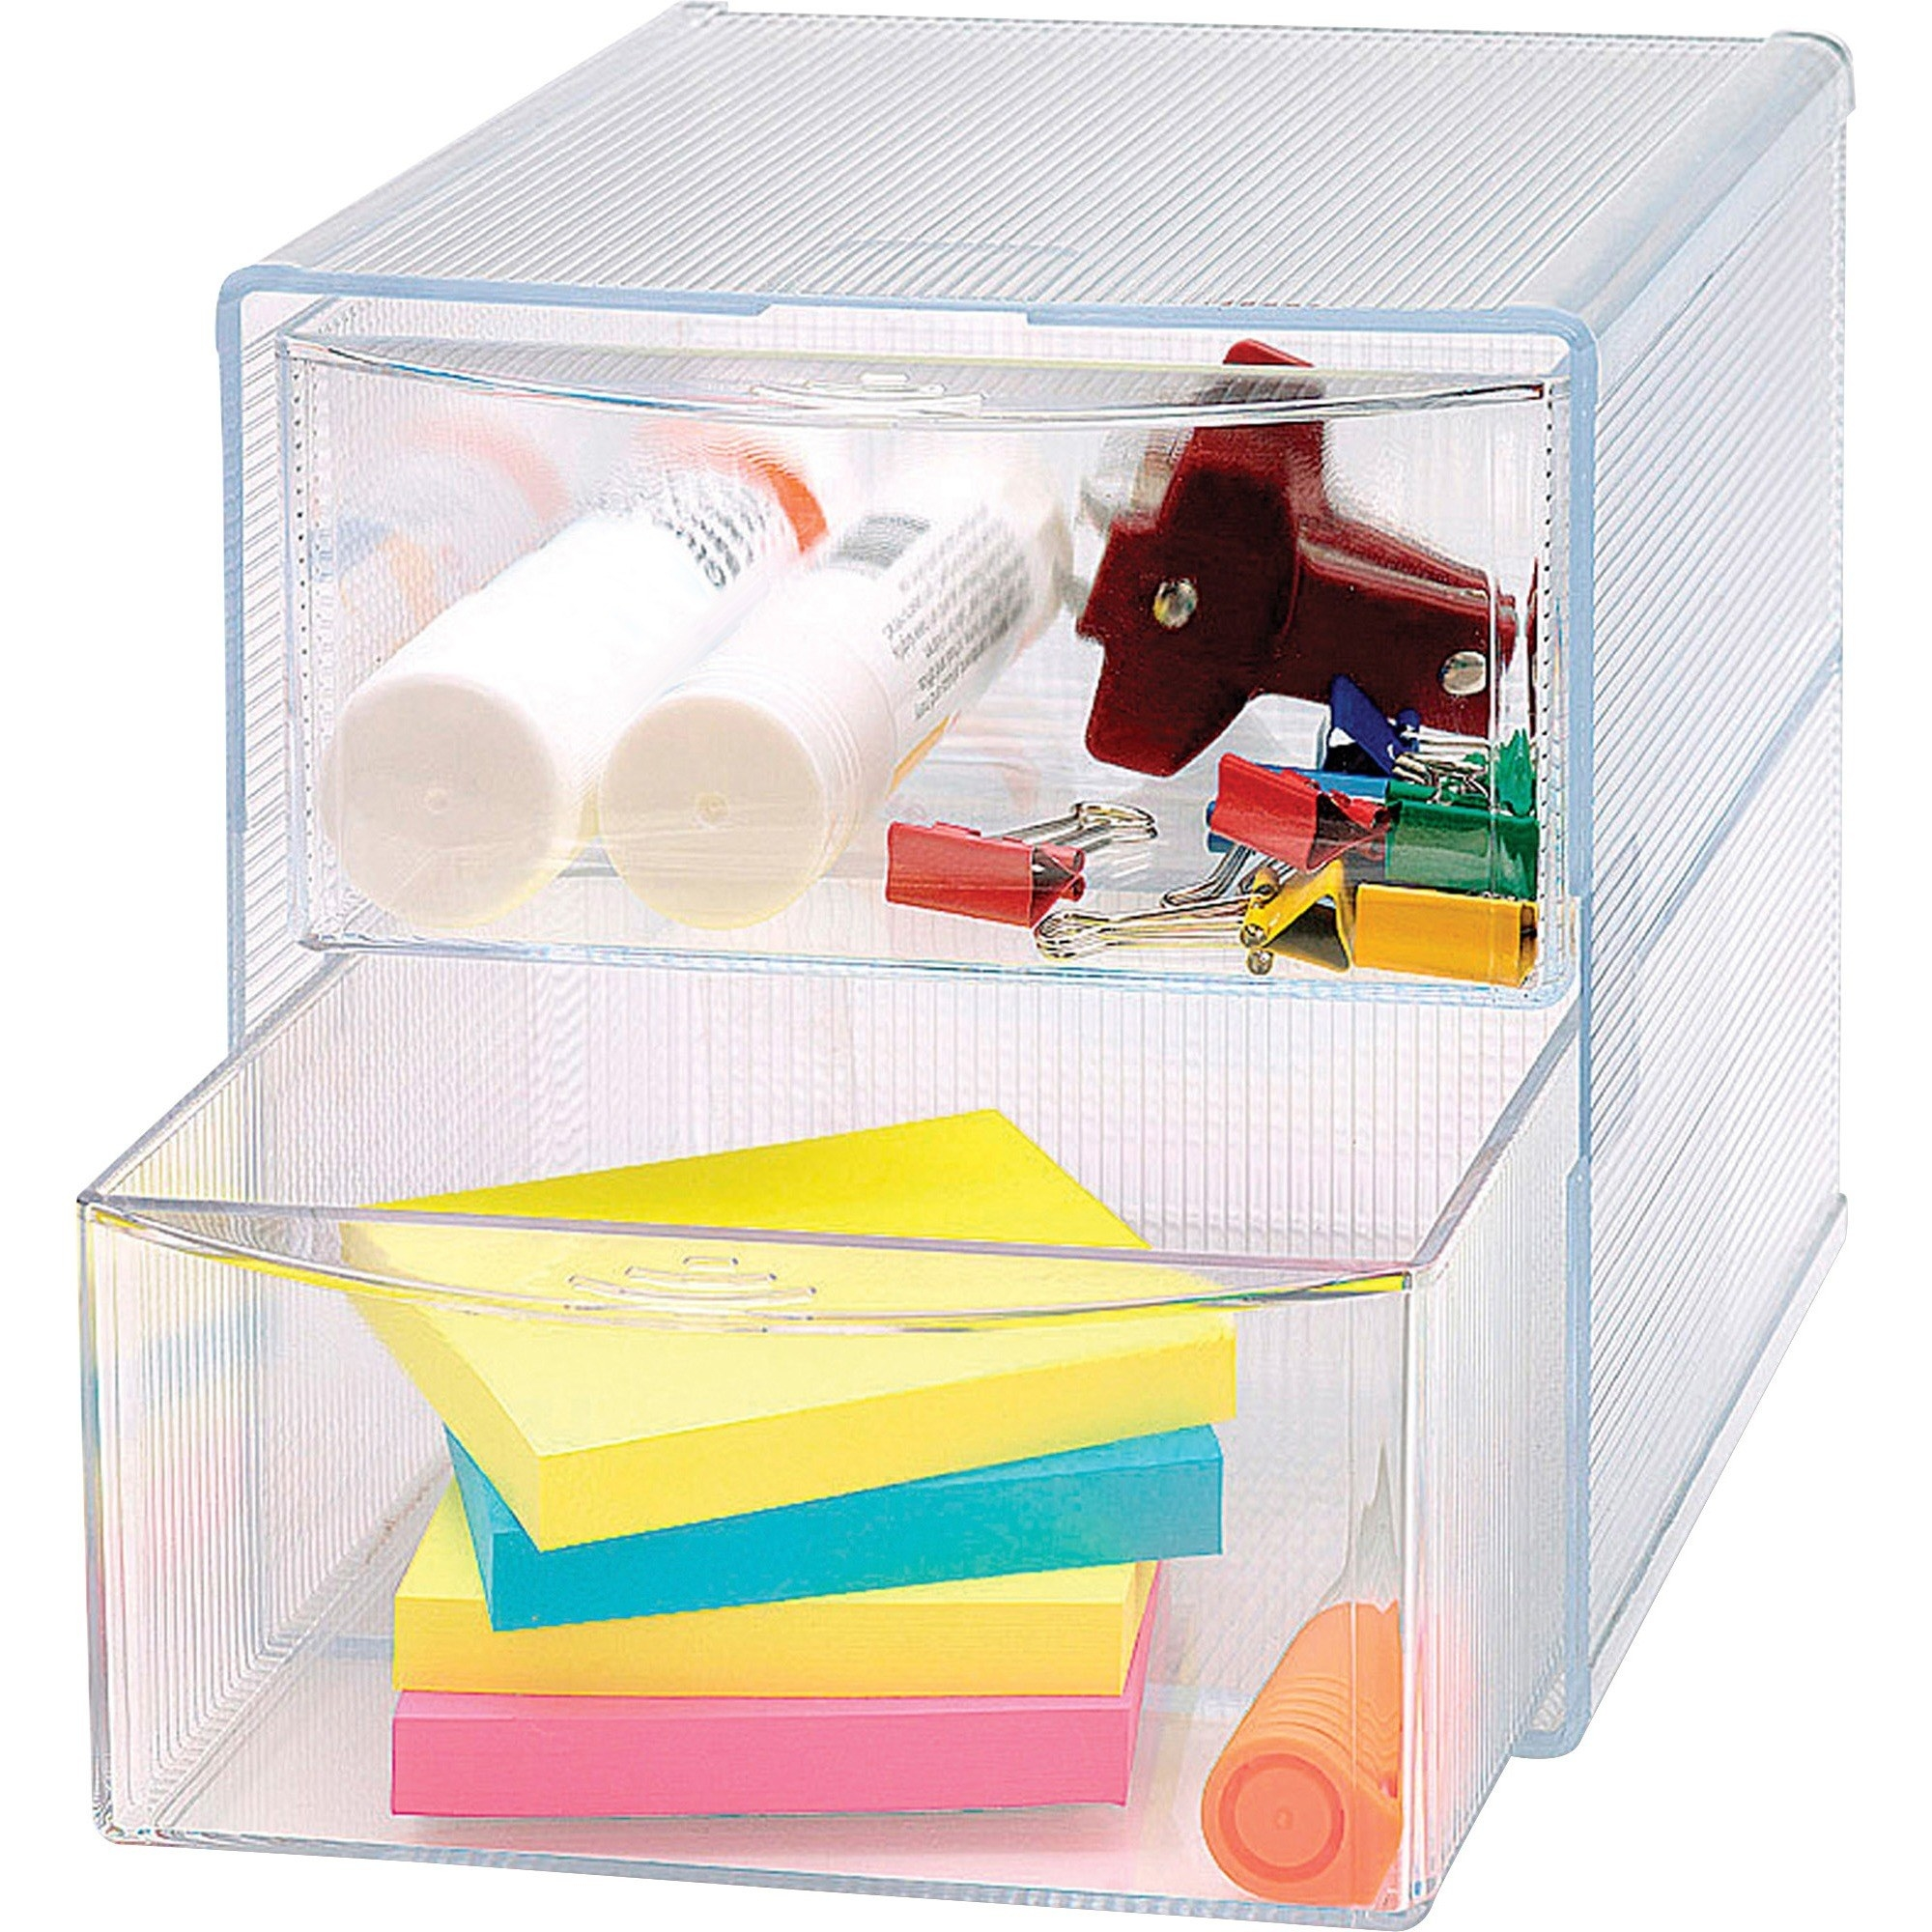 Clear box drawers with office items inside